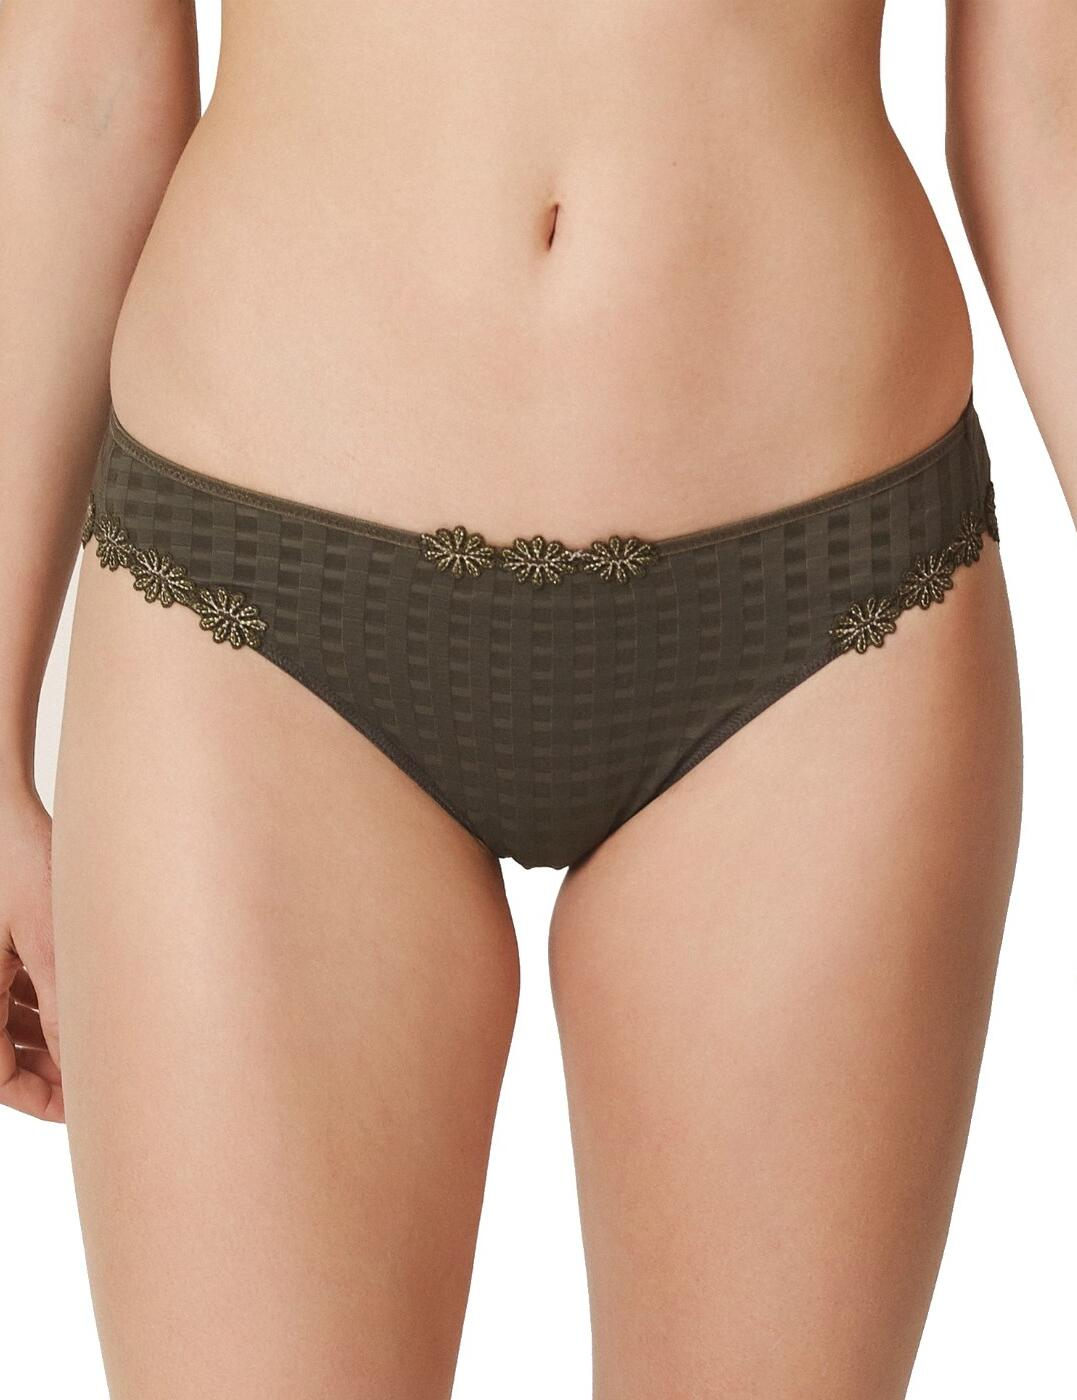 0500413 Marie Jo Avero Rio Brief - 0500413 Khaki